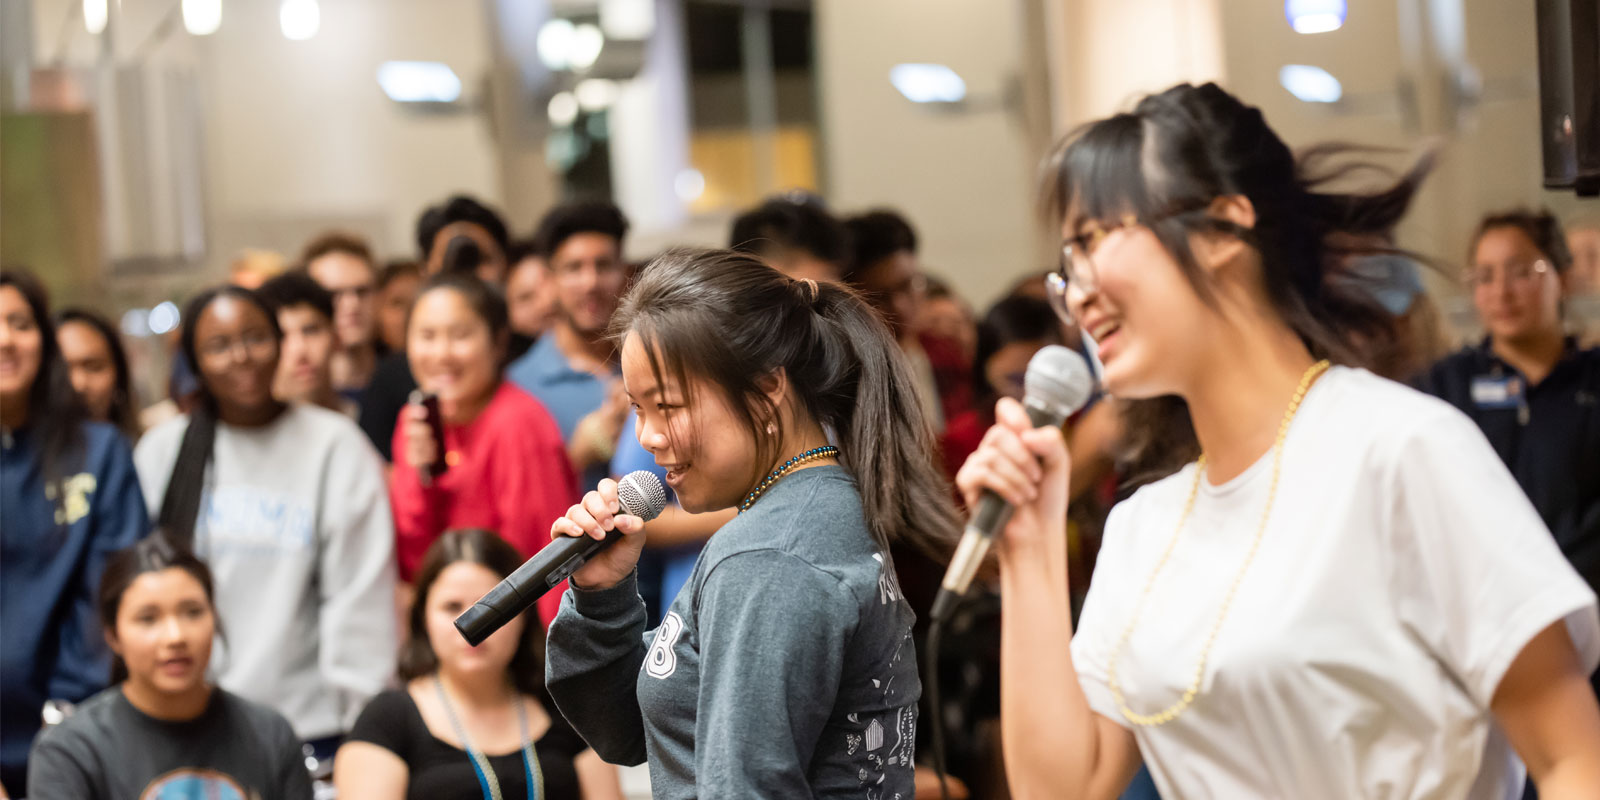 Late Night karaoke in the Segundo dining commons